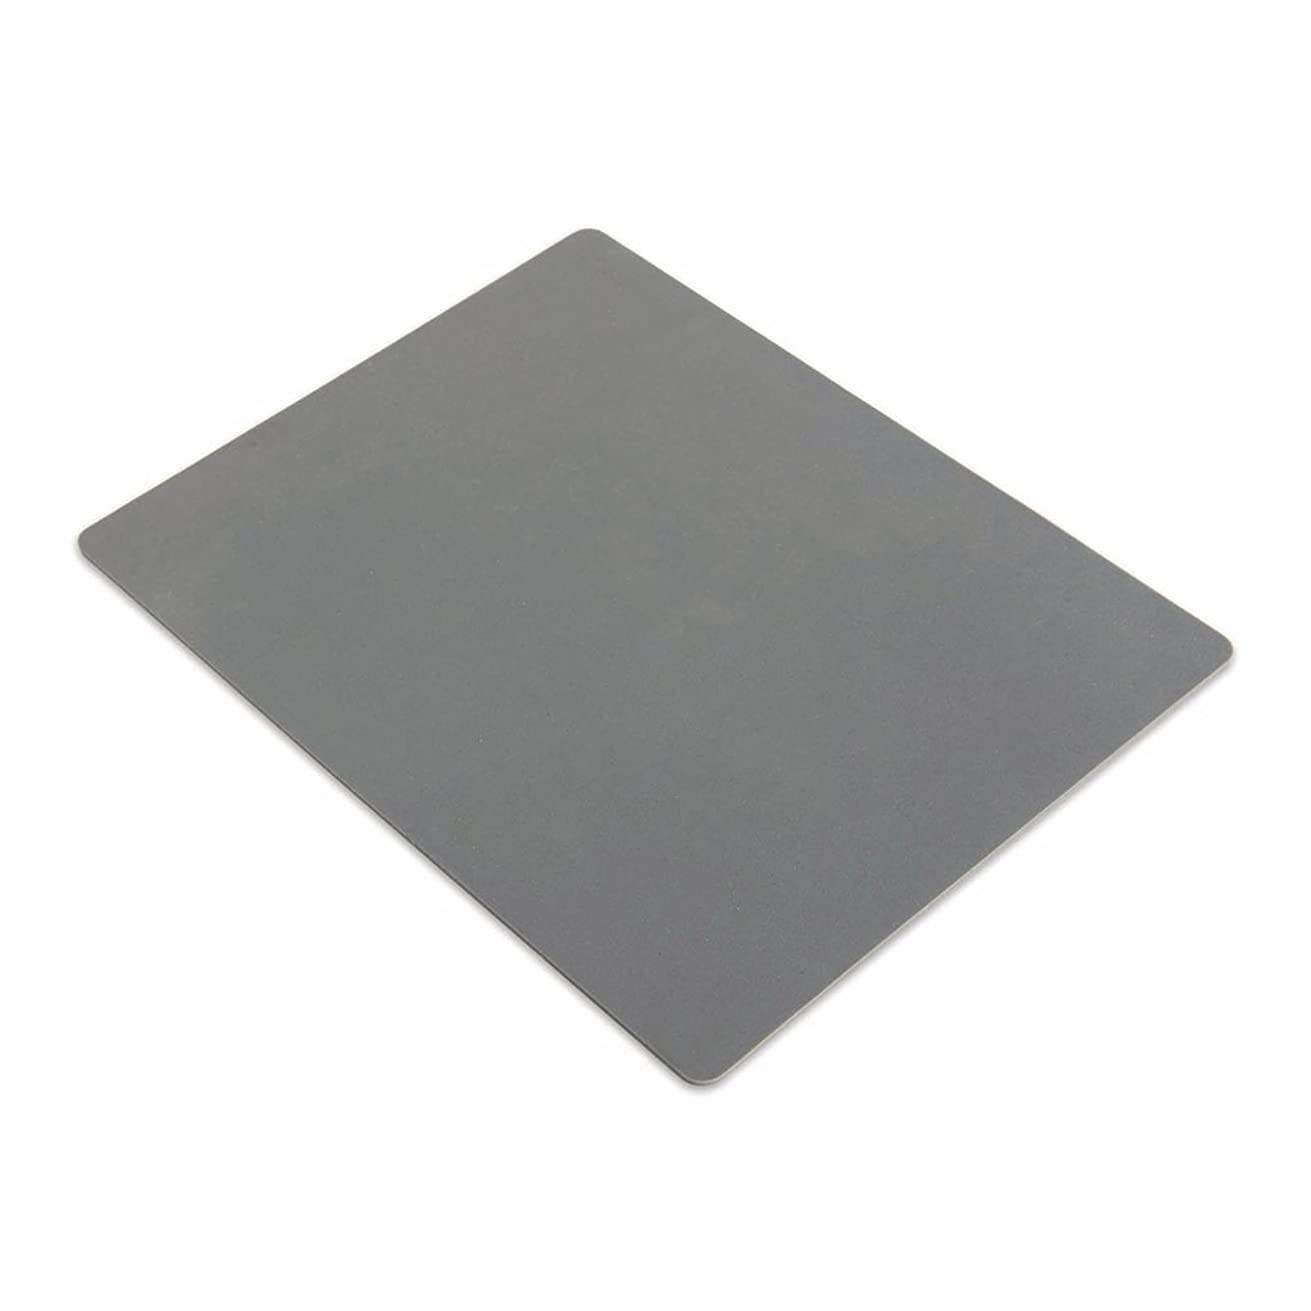 RAYHER 7911100?Sizzix Embossing Mat, Rubber, 18.7x14.7?cm, Pack of 1, Rubber, Grey, 22.402?x 16?x 0.2?cm